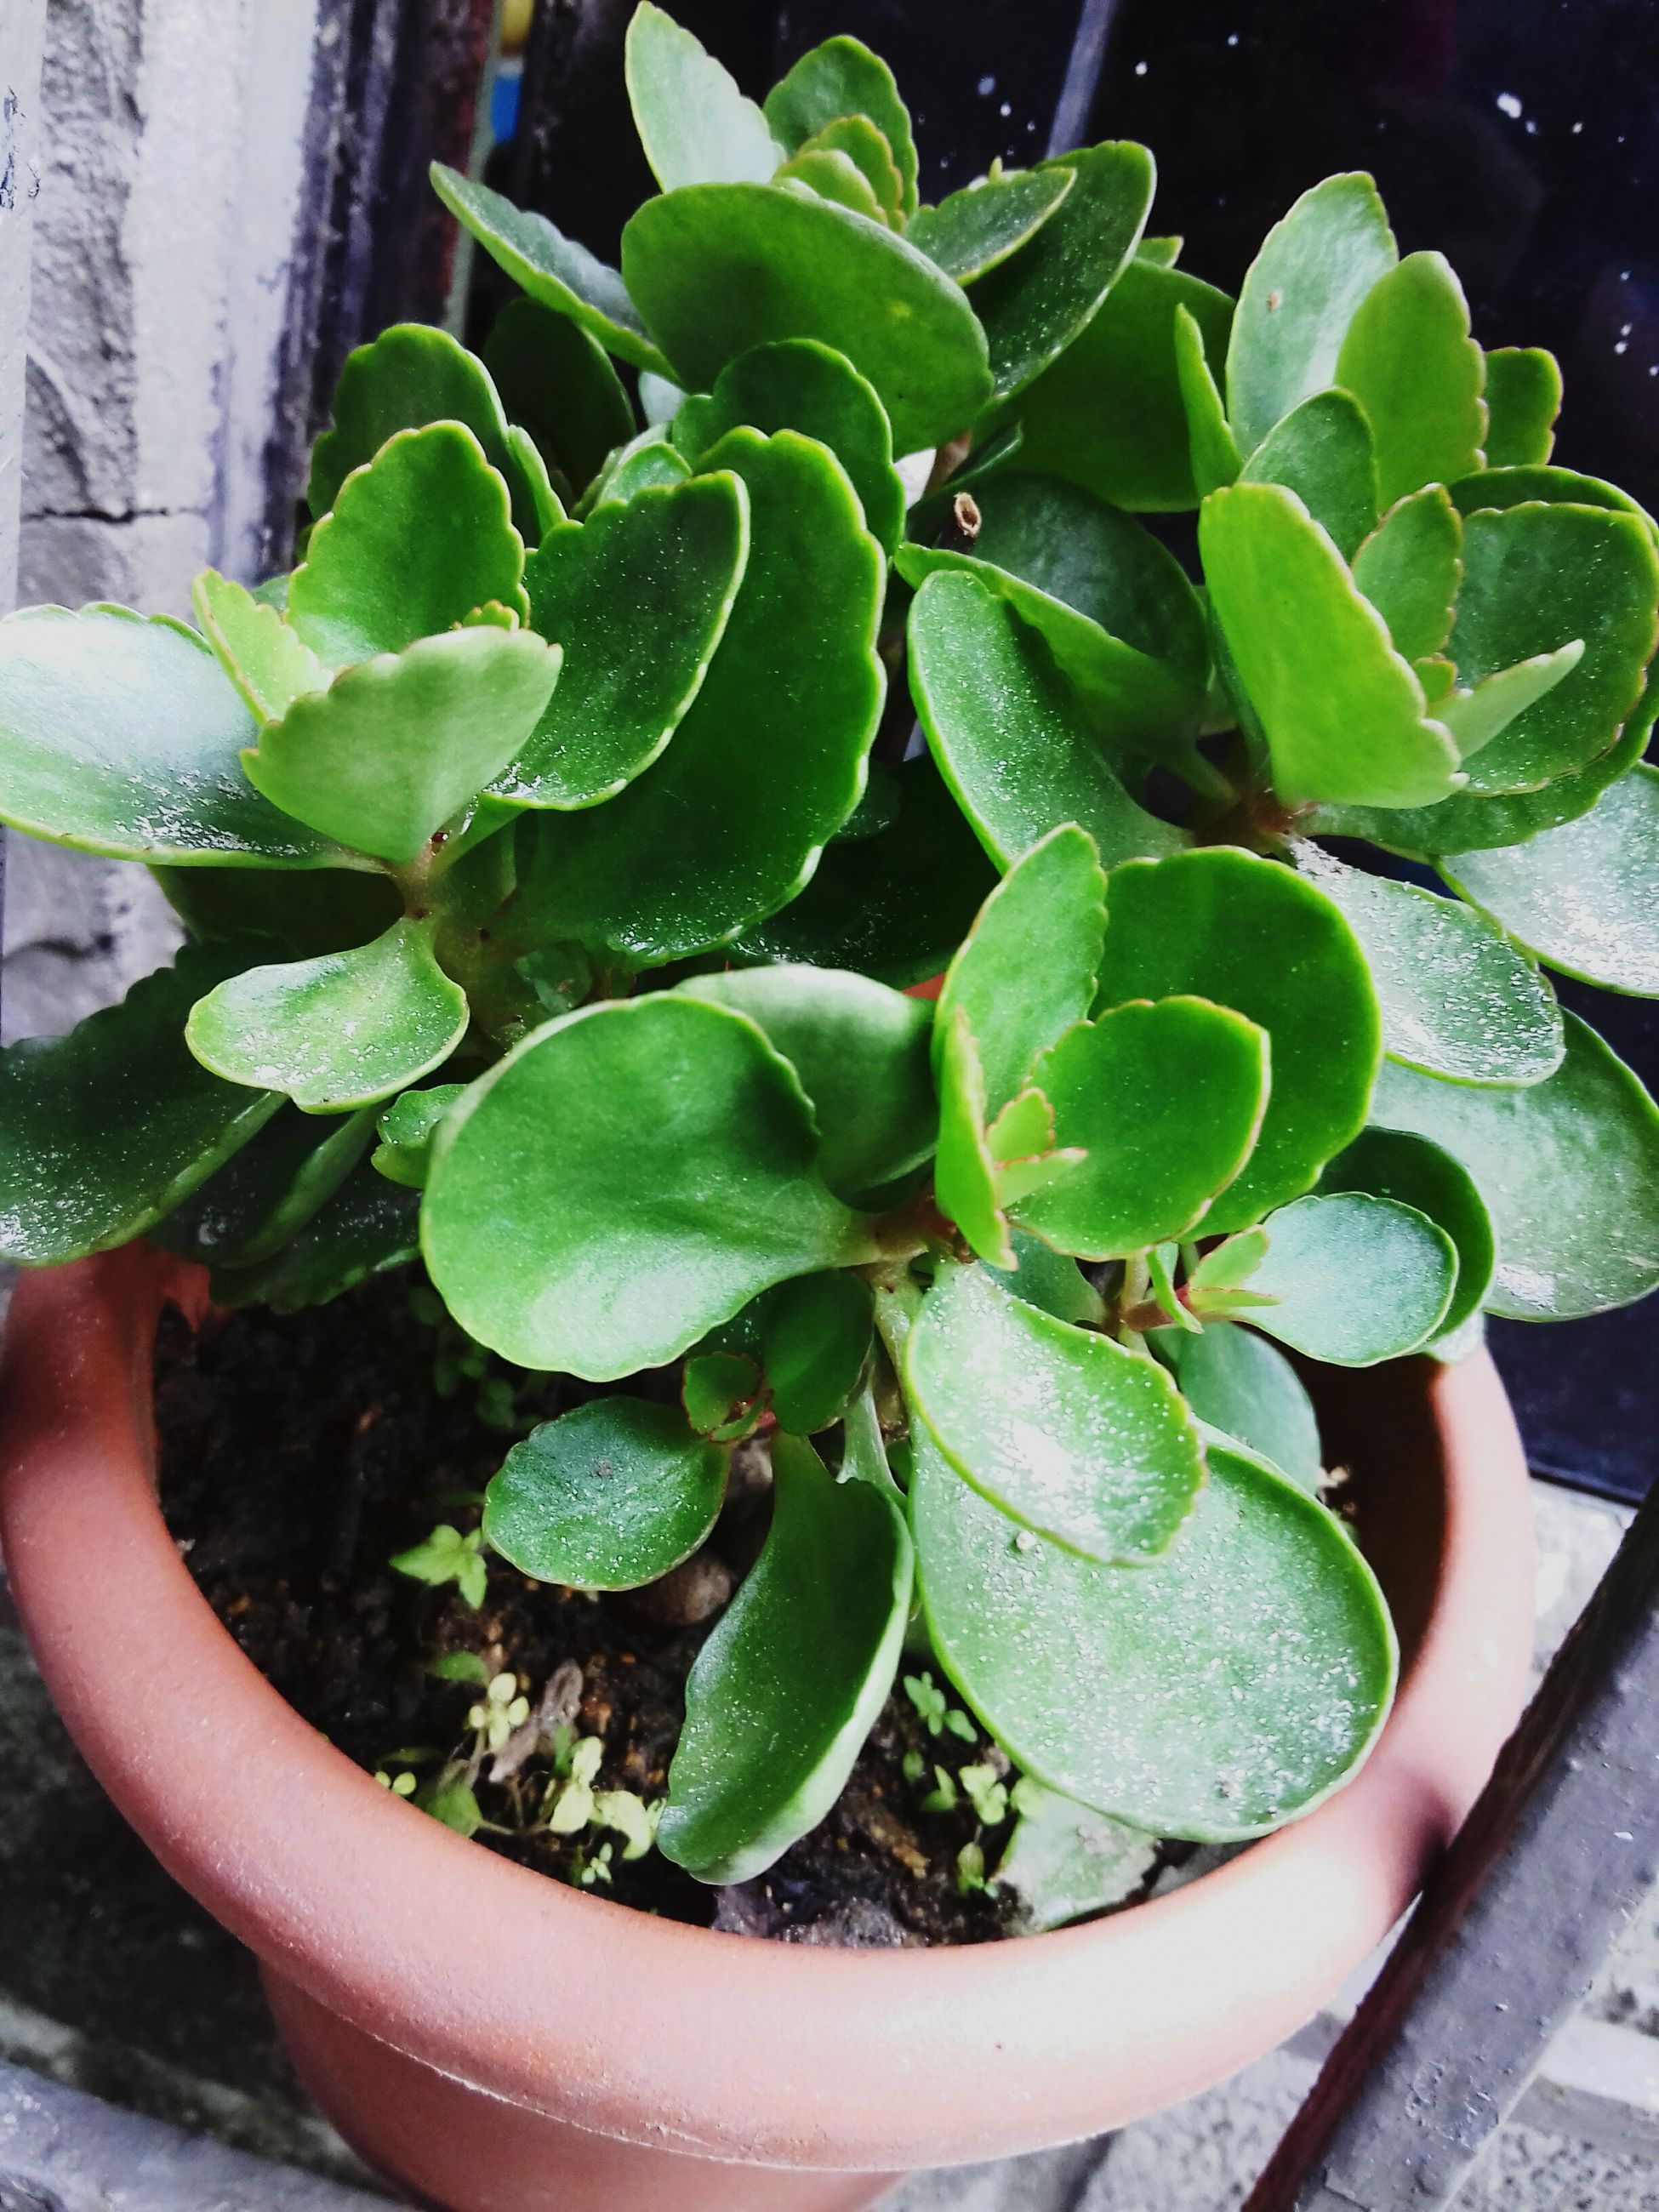 leaf, plant, growth, green color, potted plant, high angle view, freshness, nature, close-up, flower, fragility, beauty in nature, growing, water, front or back yard, day, outdoors, green, botany, cactus